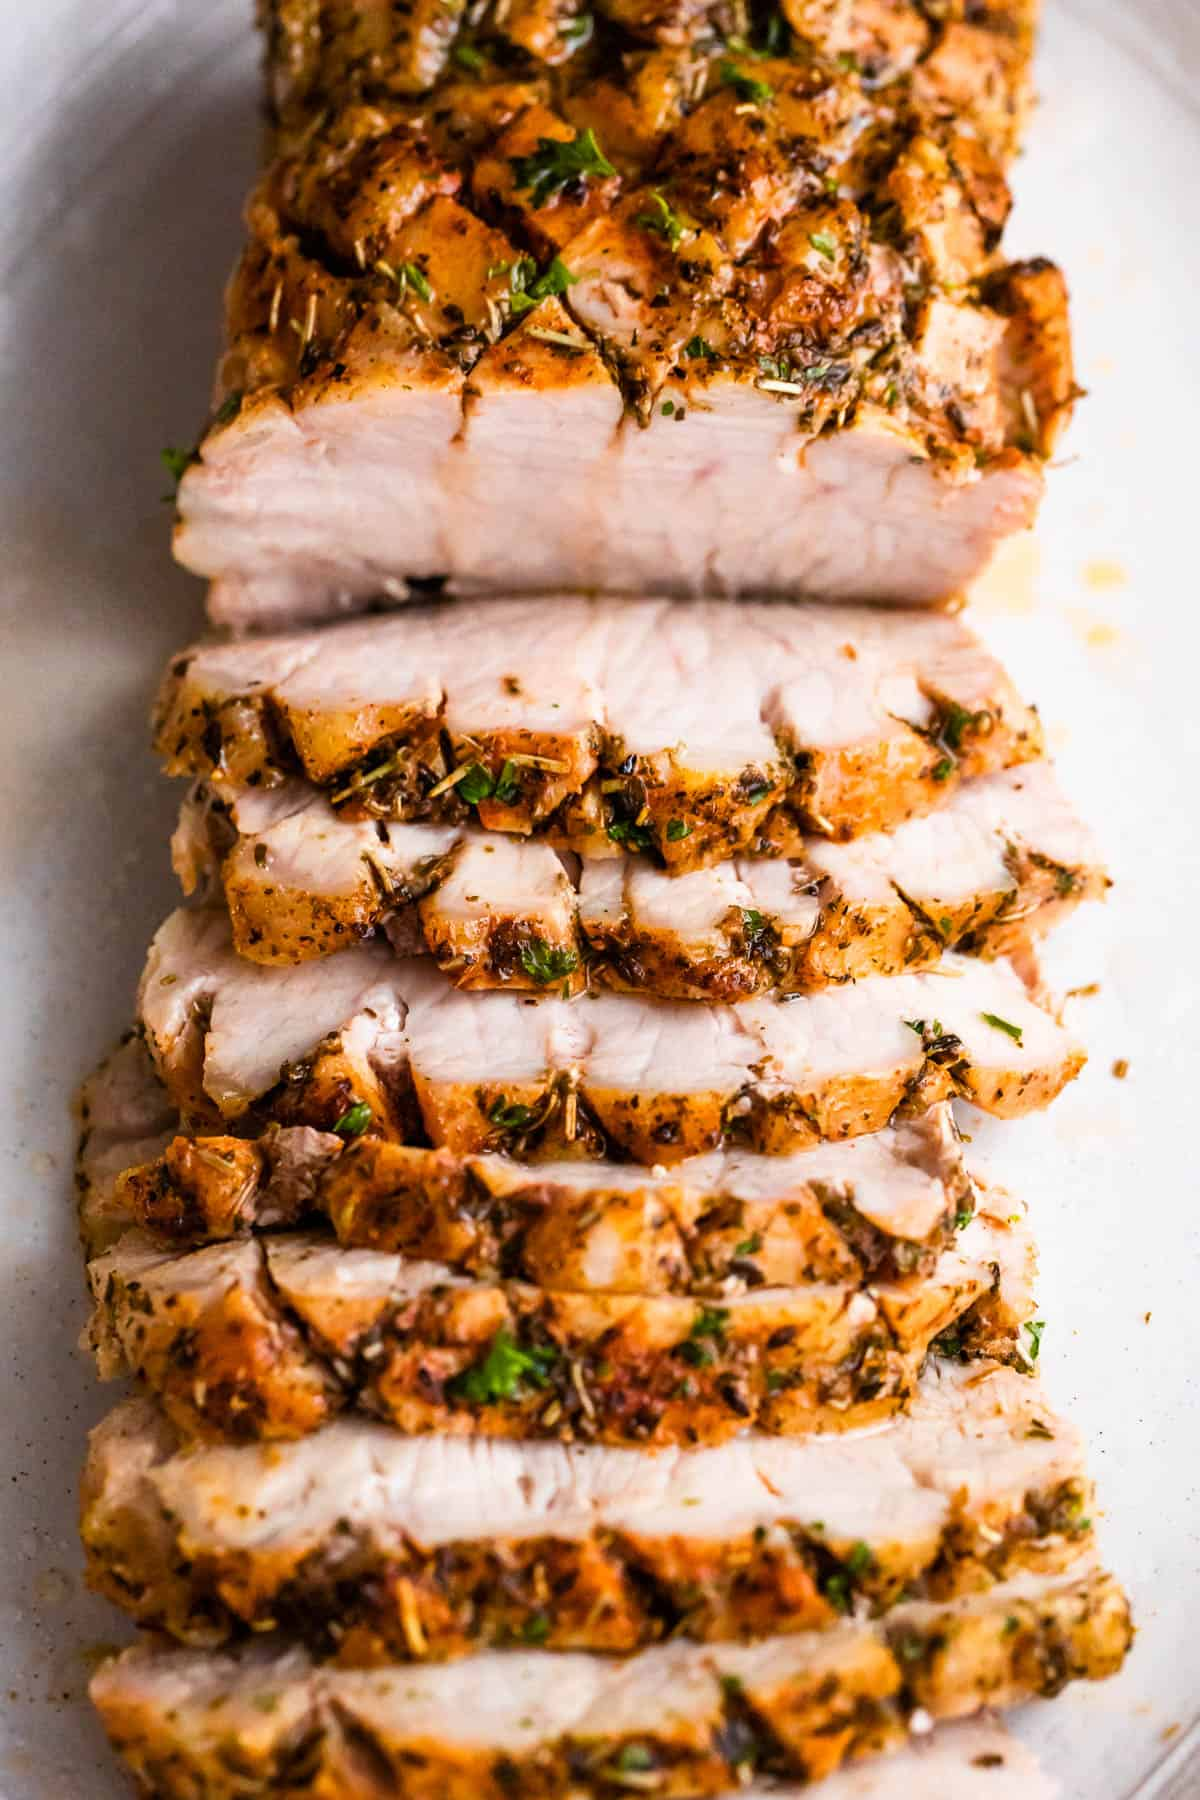 overhead shot of cooked and sliced pork roast set on a white background